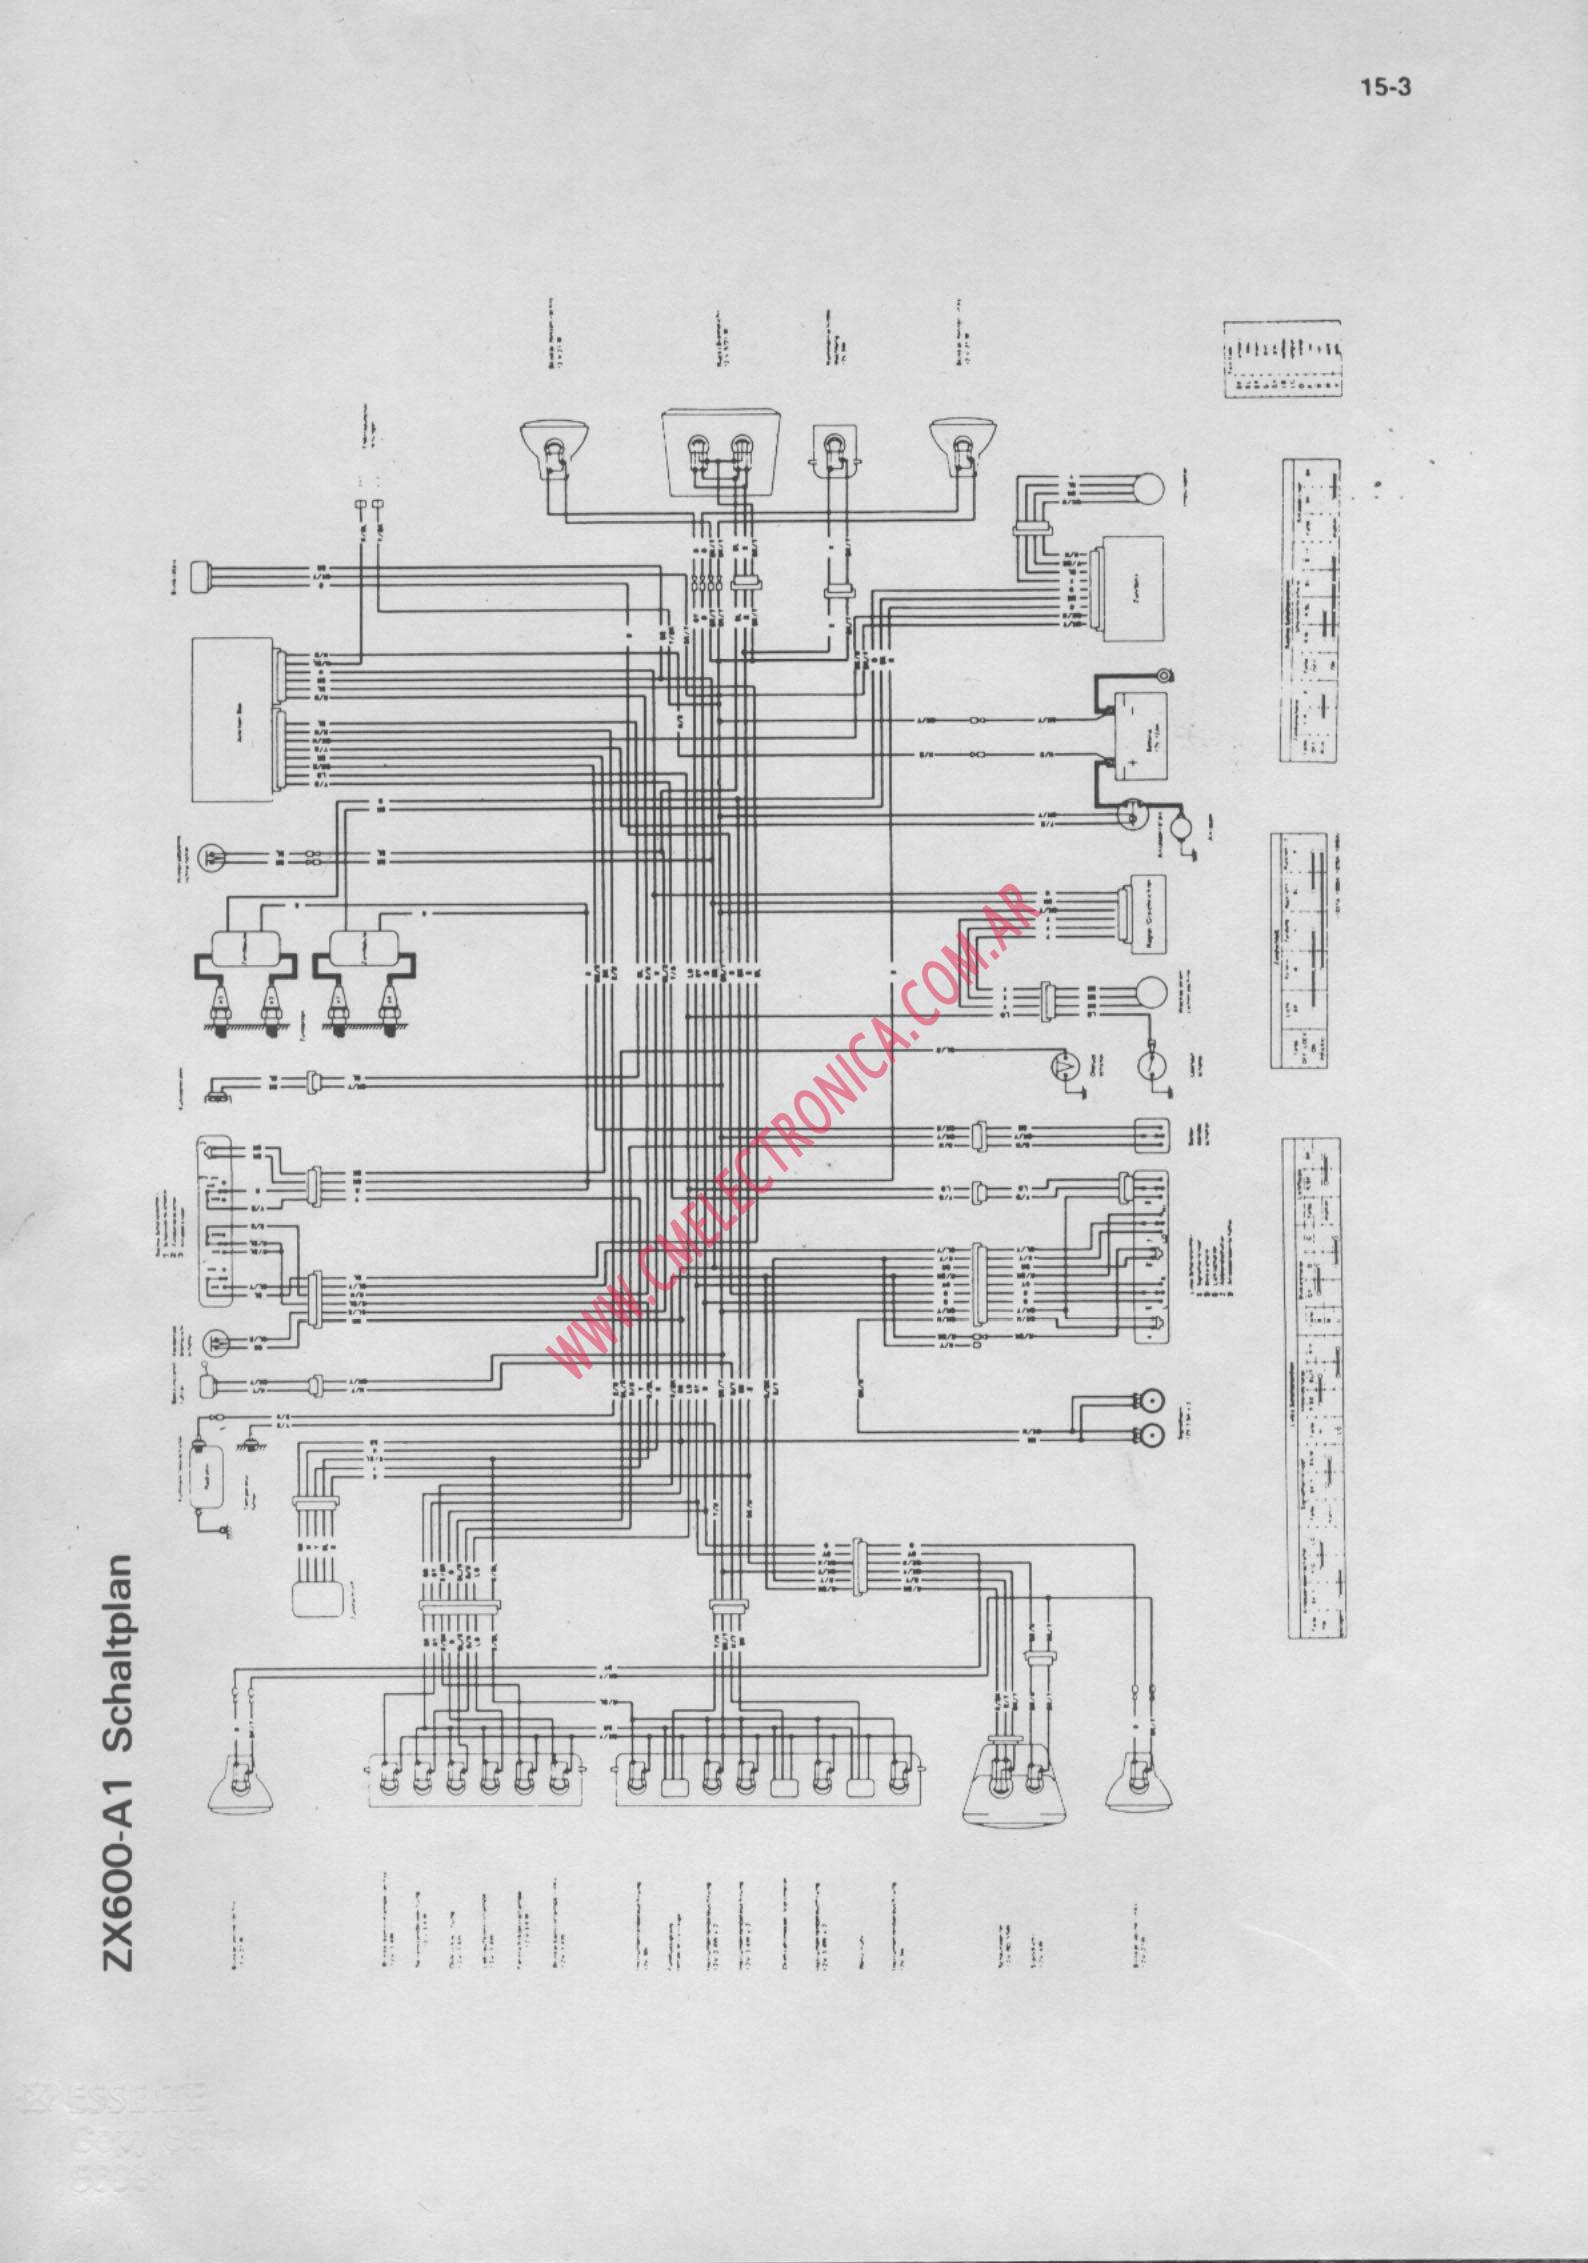 Diagram  1985 Kawasaki Ninja 600 Wiring Diagram Schematic Full Version Hd Quality Diagram